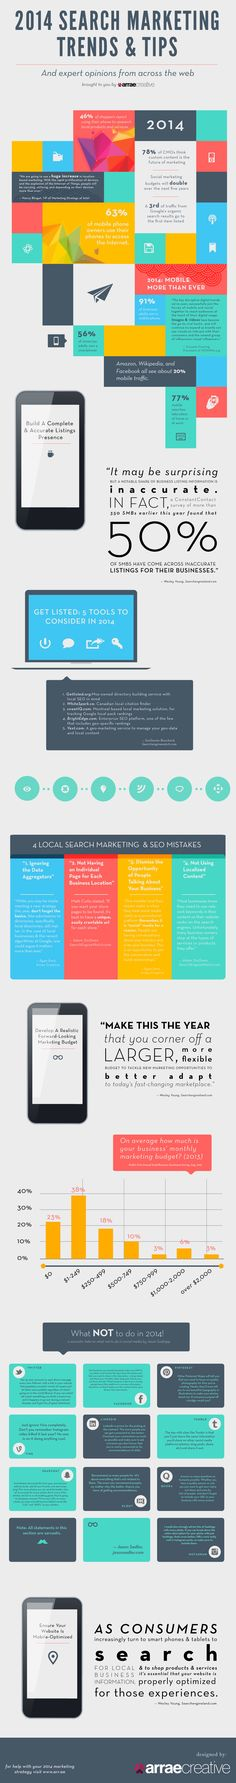 2014 Digital Marketing Trends And Tips [#INFOGRAPHIC]